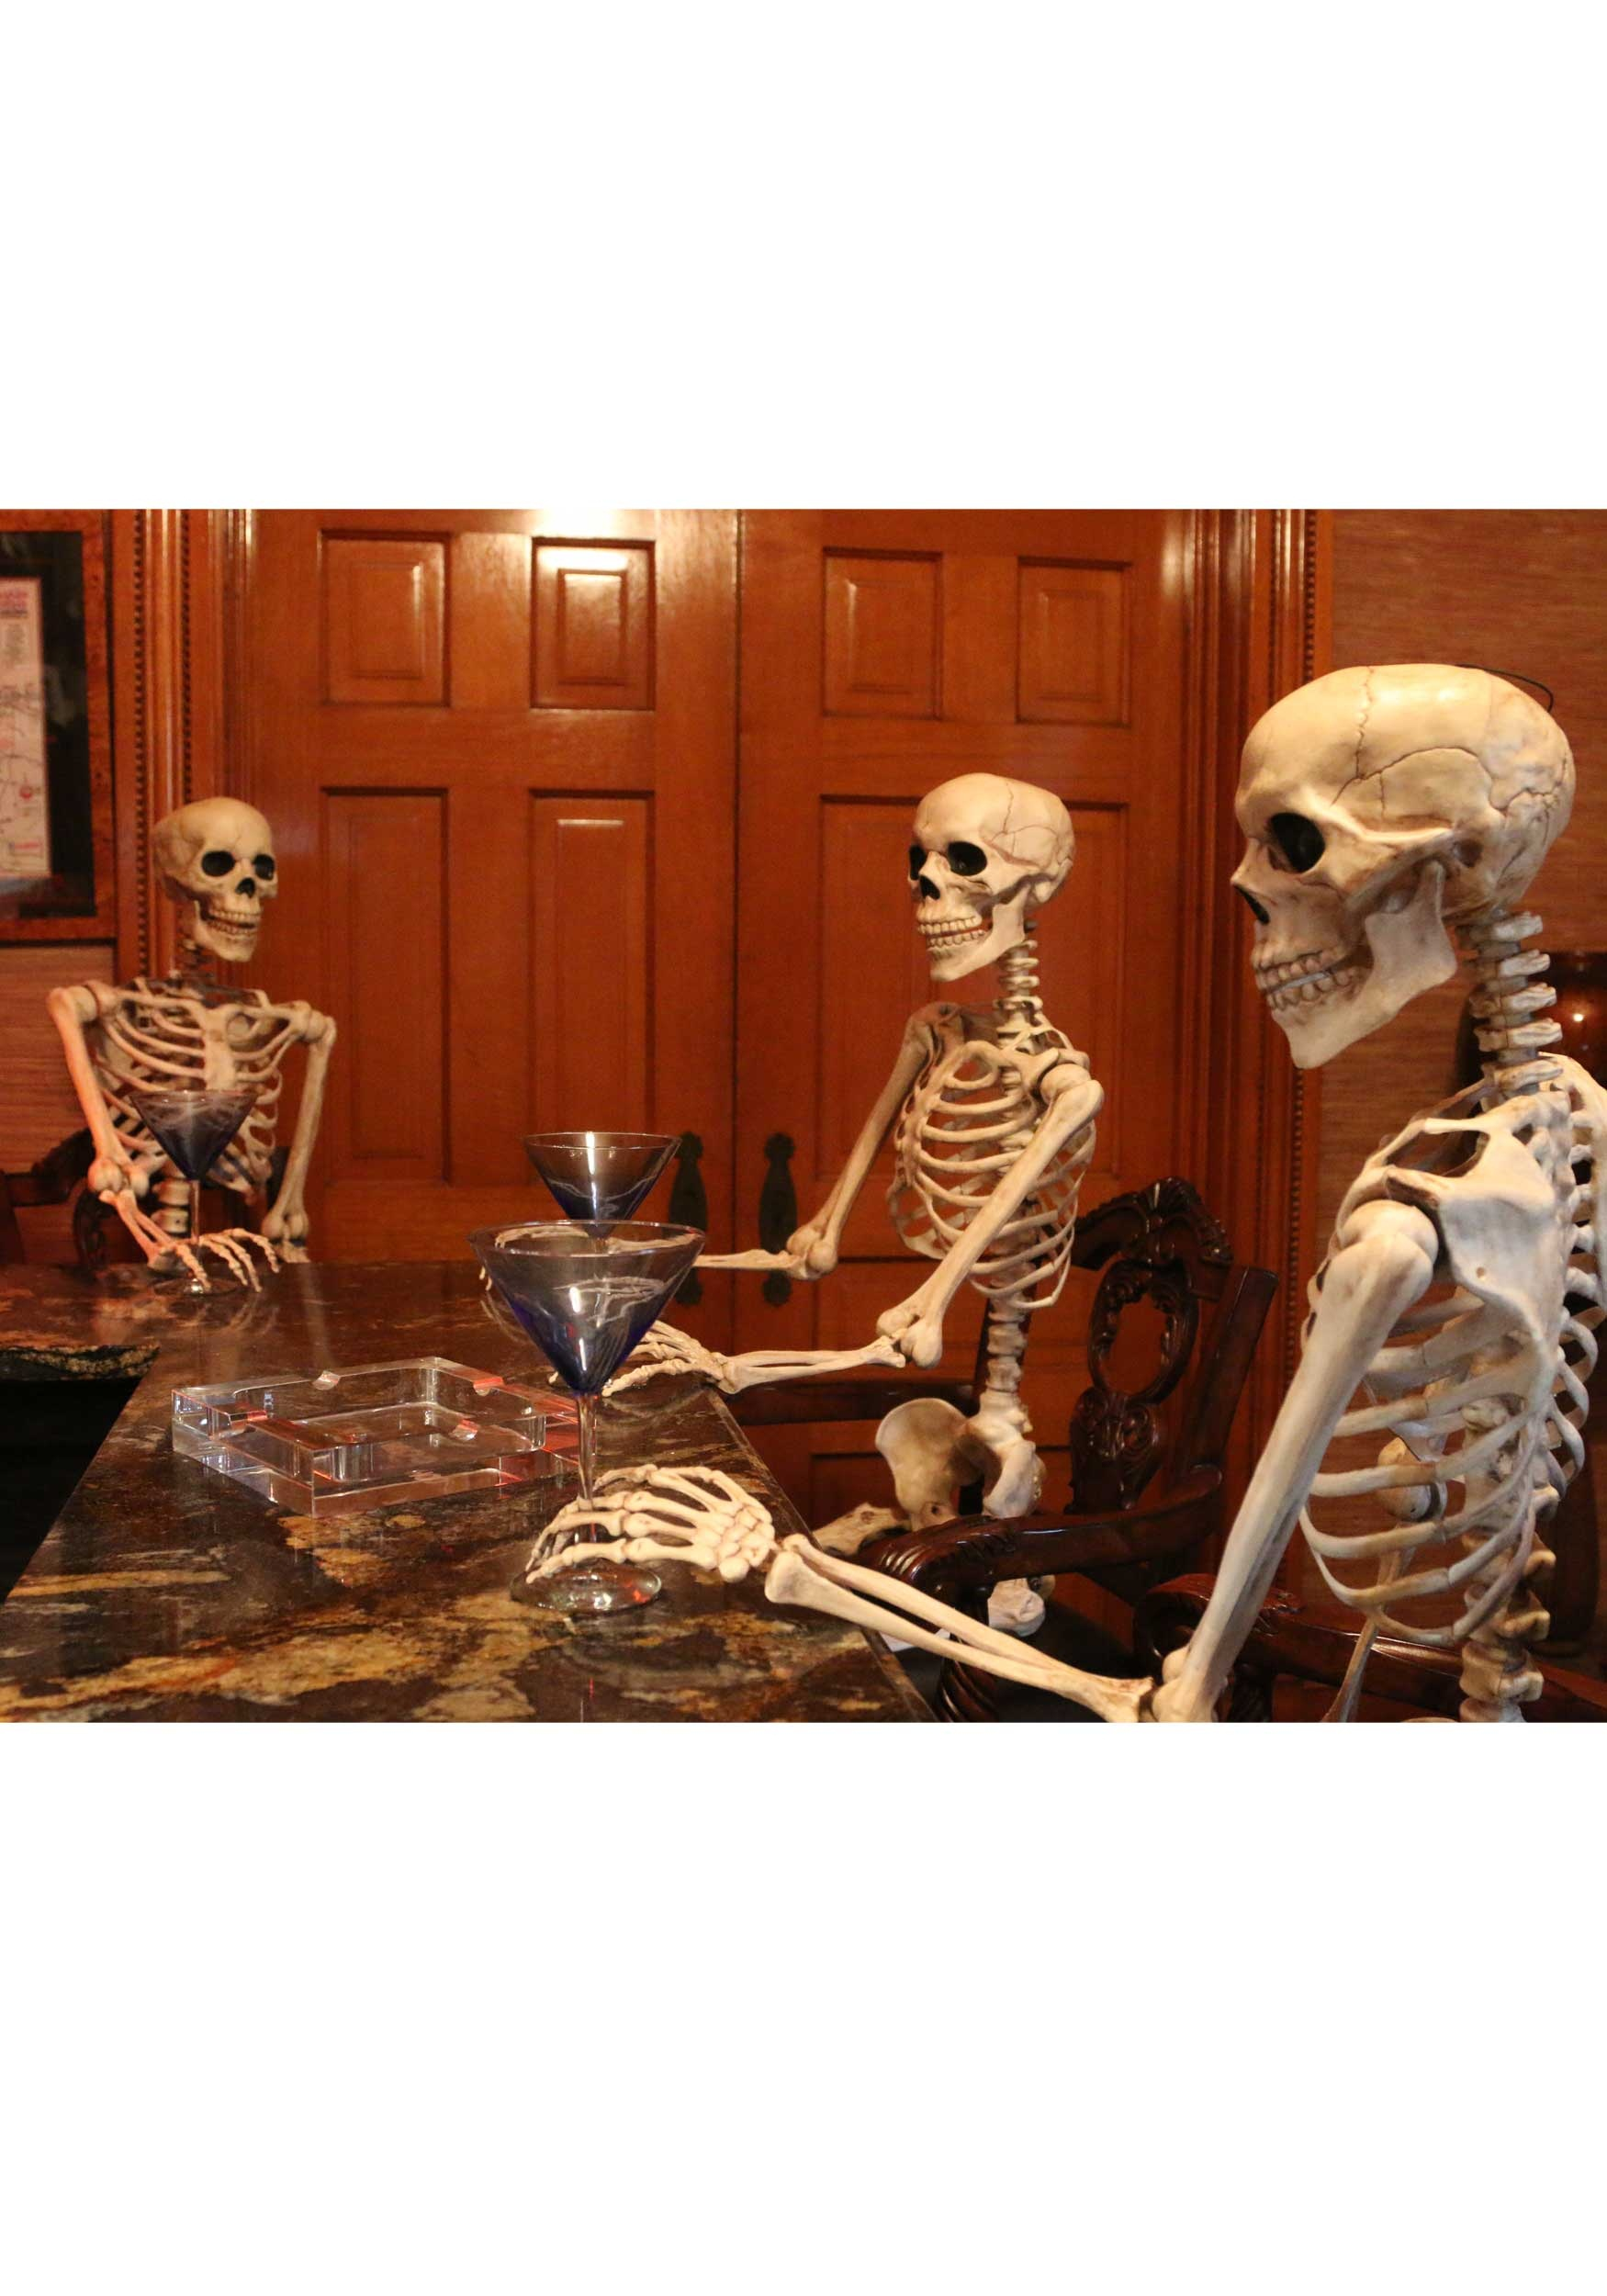 Lifesize Posable Skeleton - Skeleton Halloween Decorations